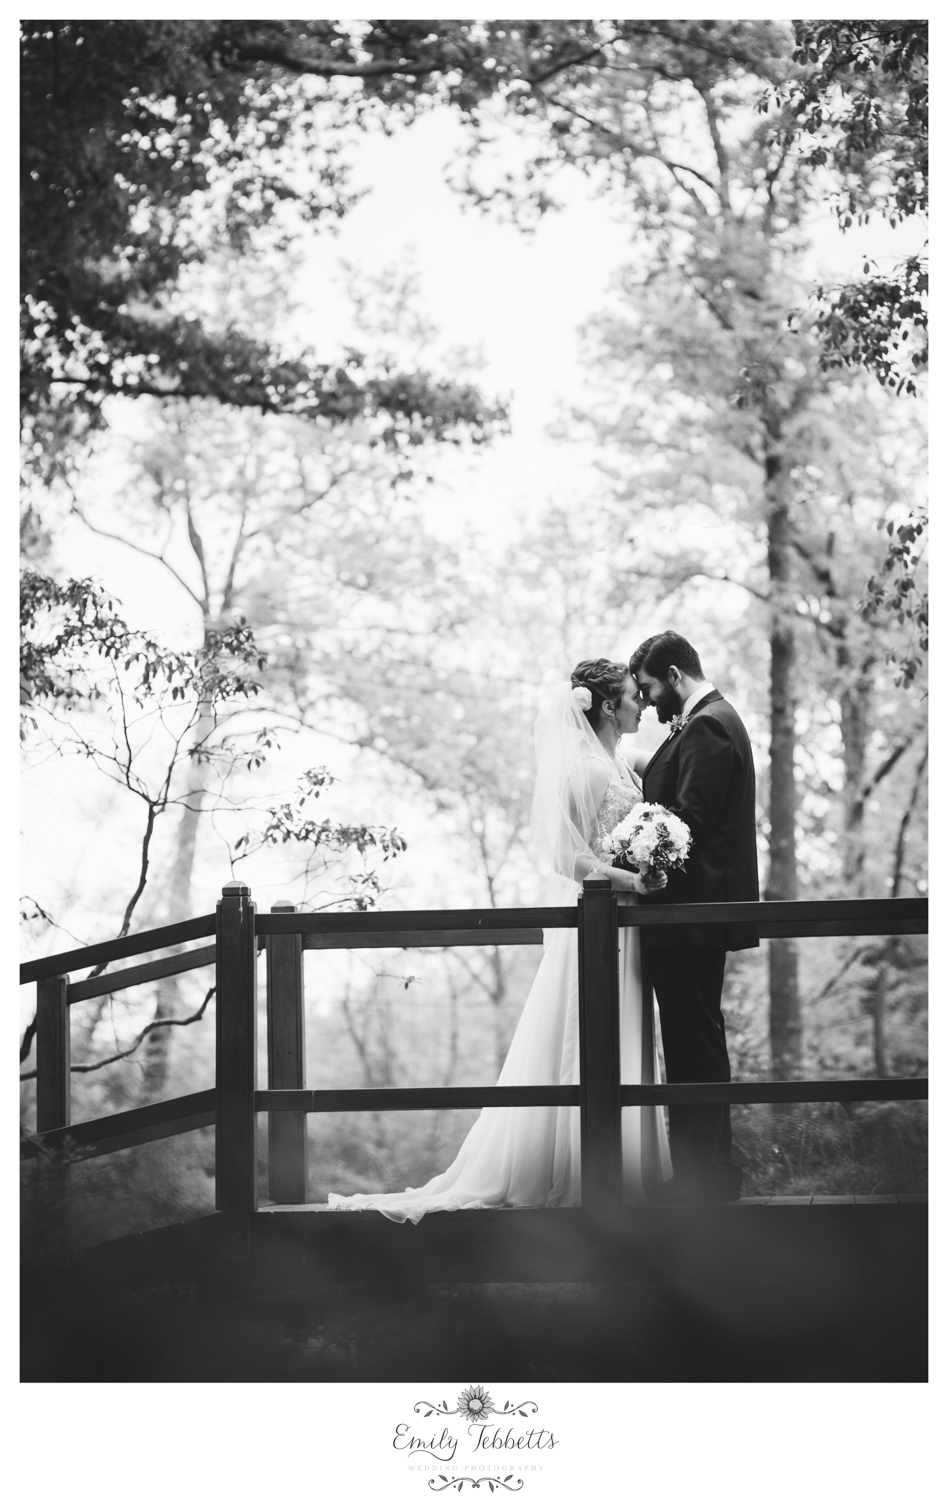 Emily Tebbetts Photography Backyard wedding madison NJ new jersey new england intimate elopement